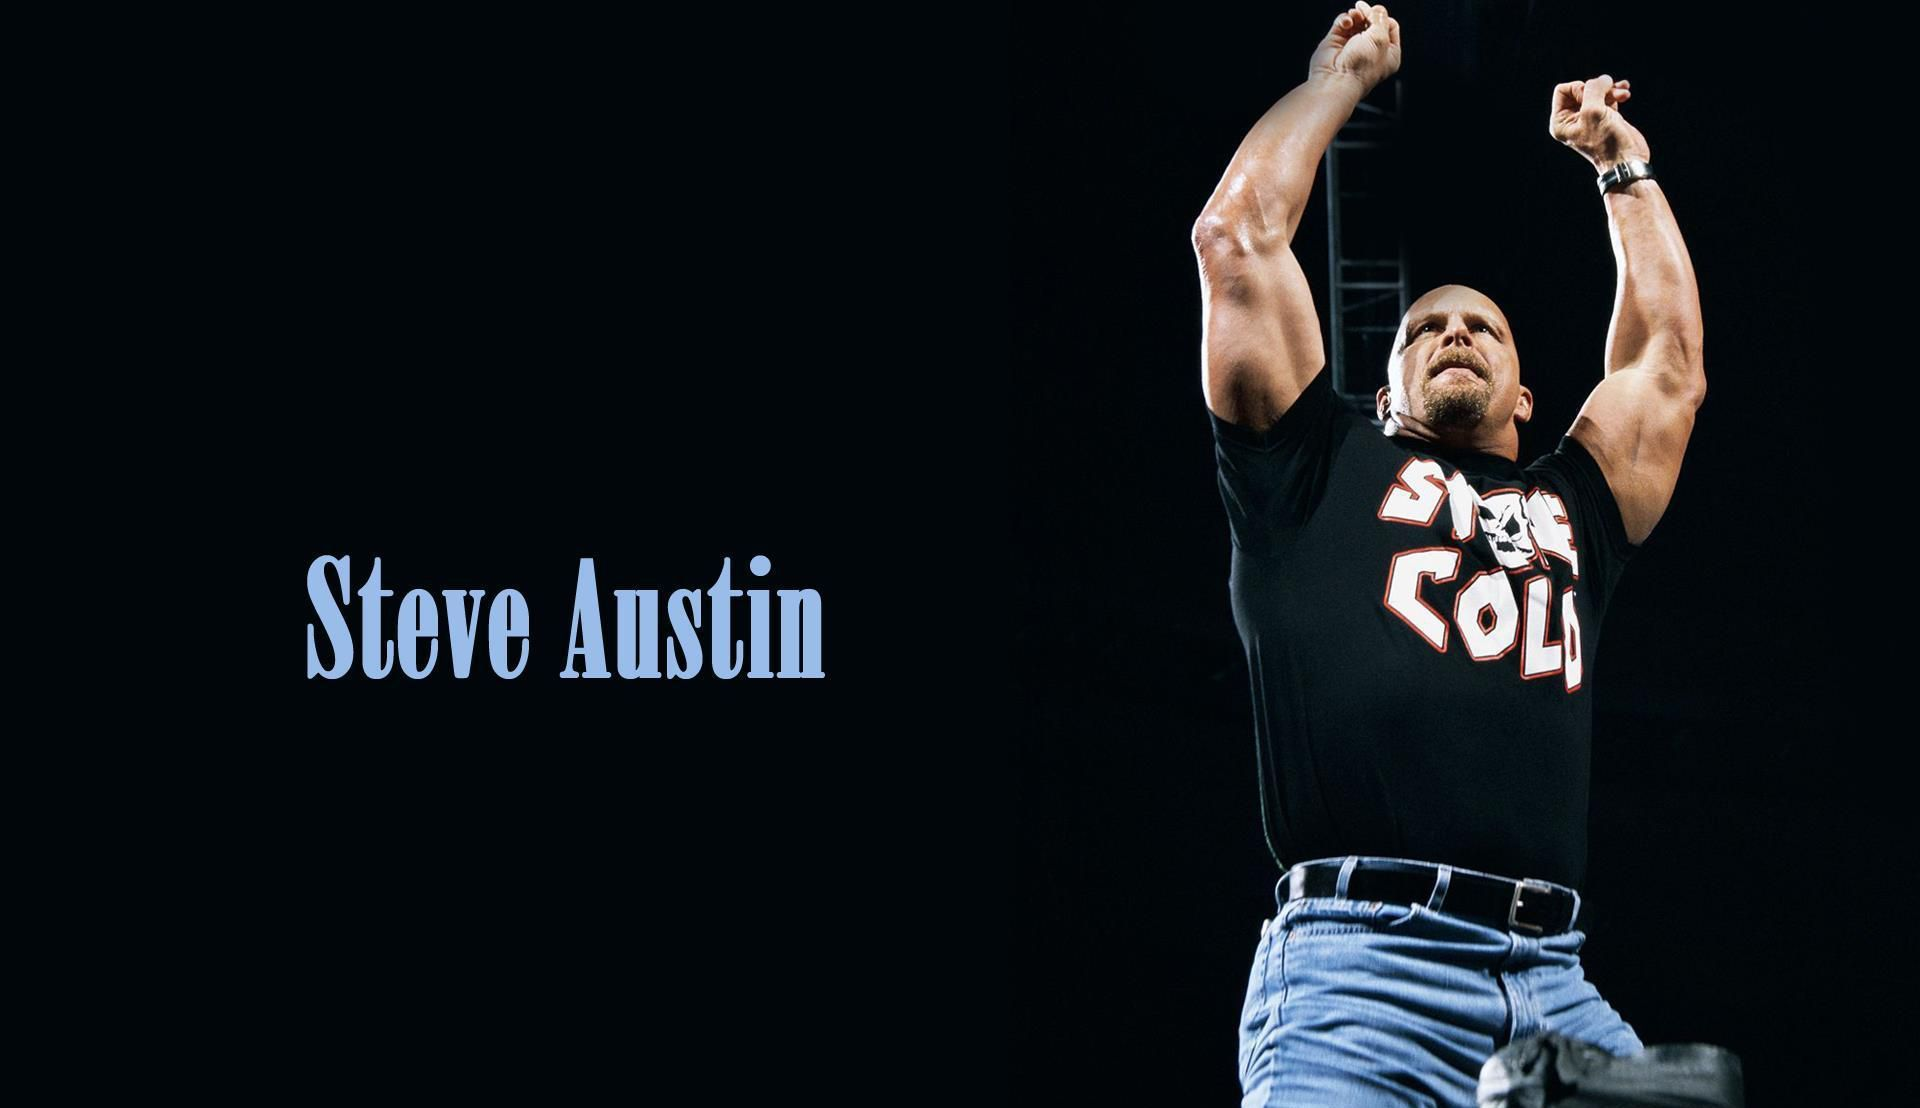 Stone Cold Steve Austin HD Wallpapers Images Backgrounds 1920x1108